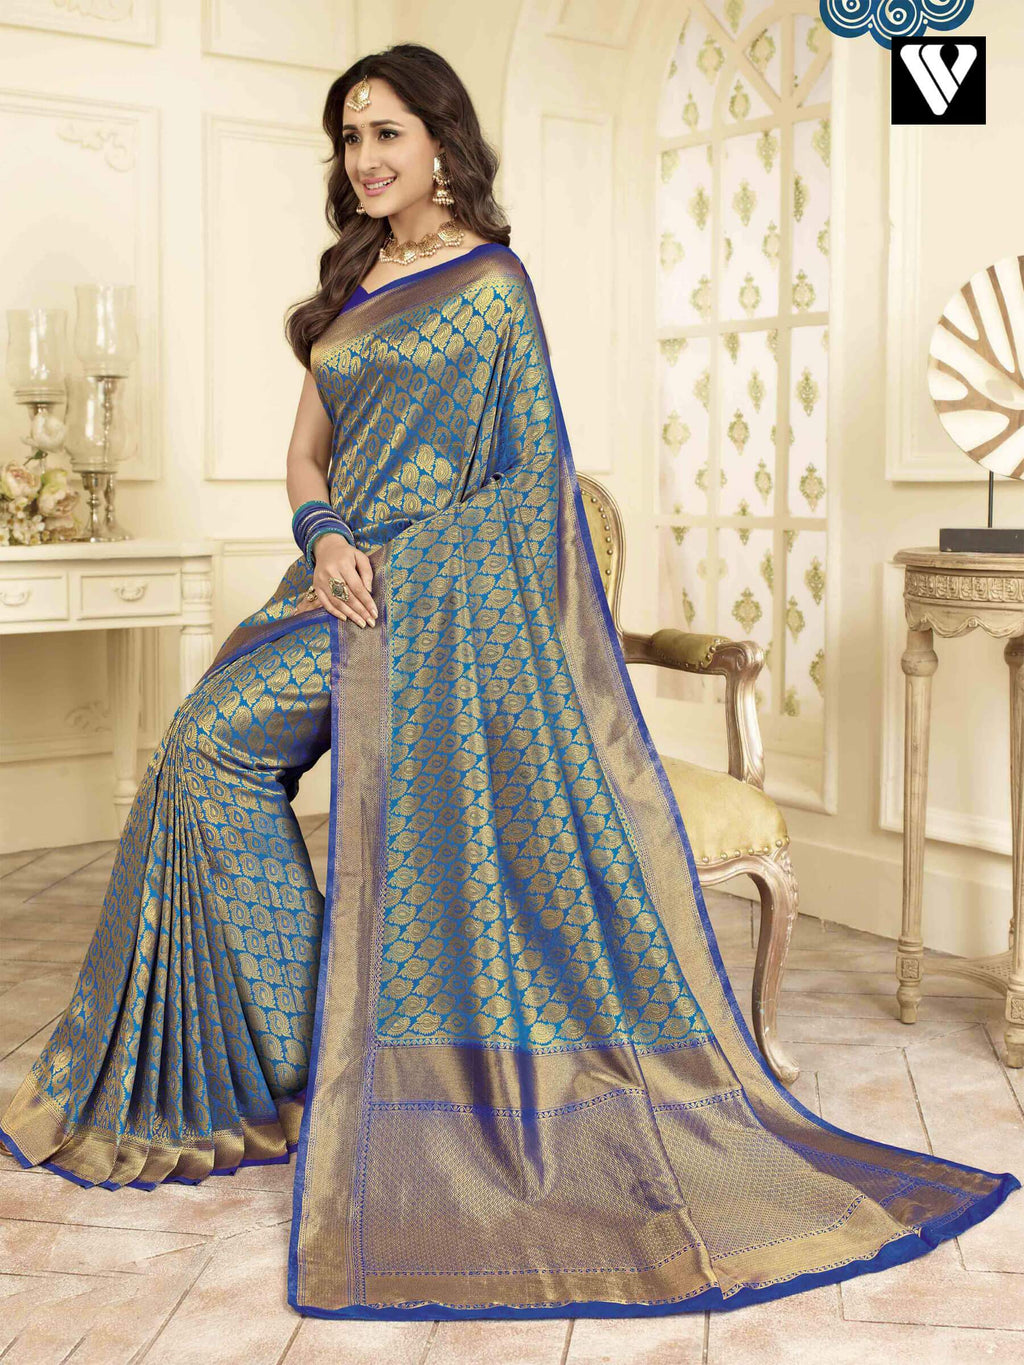 Wedding Wear Style Banarasi Art Silk Sarees In Blue Gold